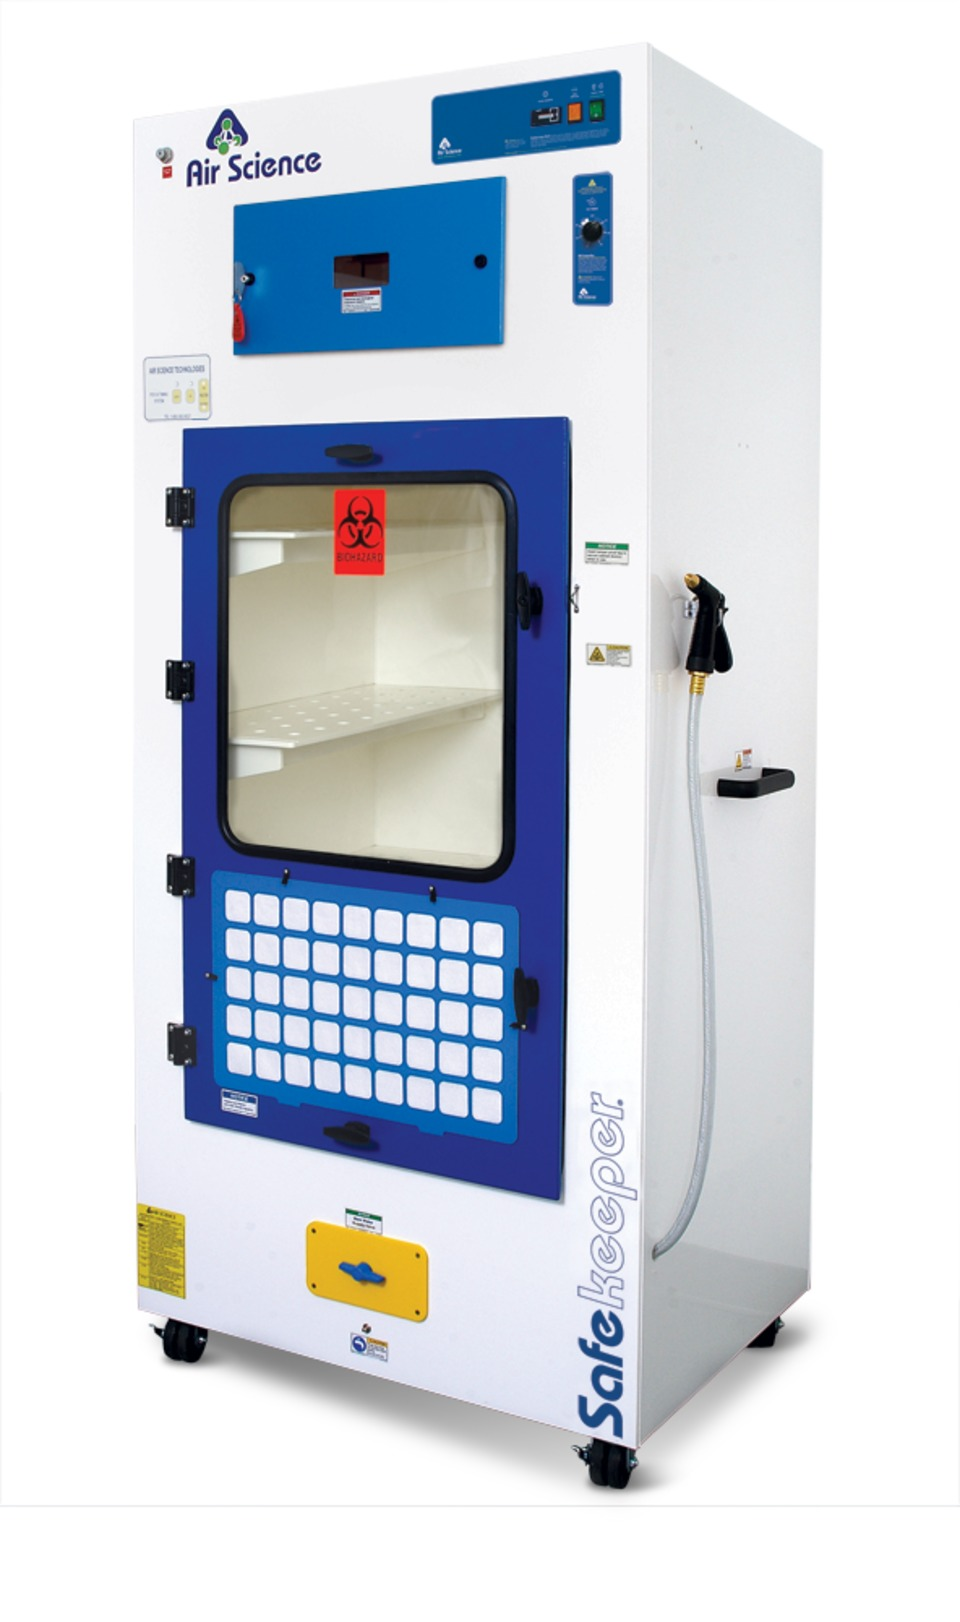 Dry Safe Evidence Drying Cabinet Assembly ~ Air science safekeeper forensic evidence drying cabinets